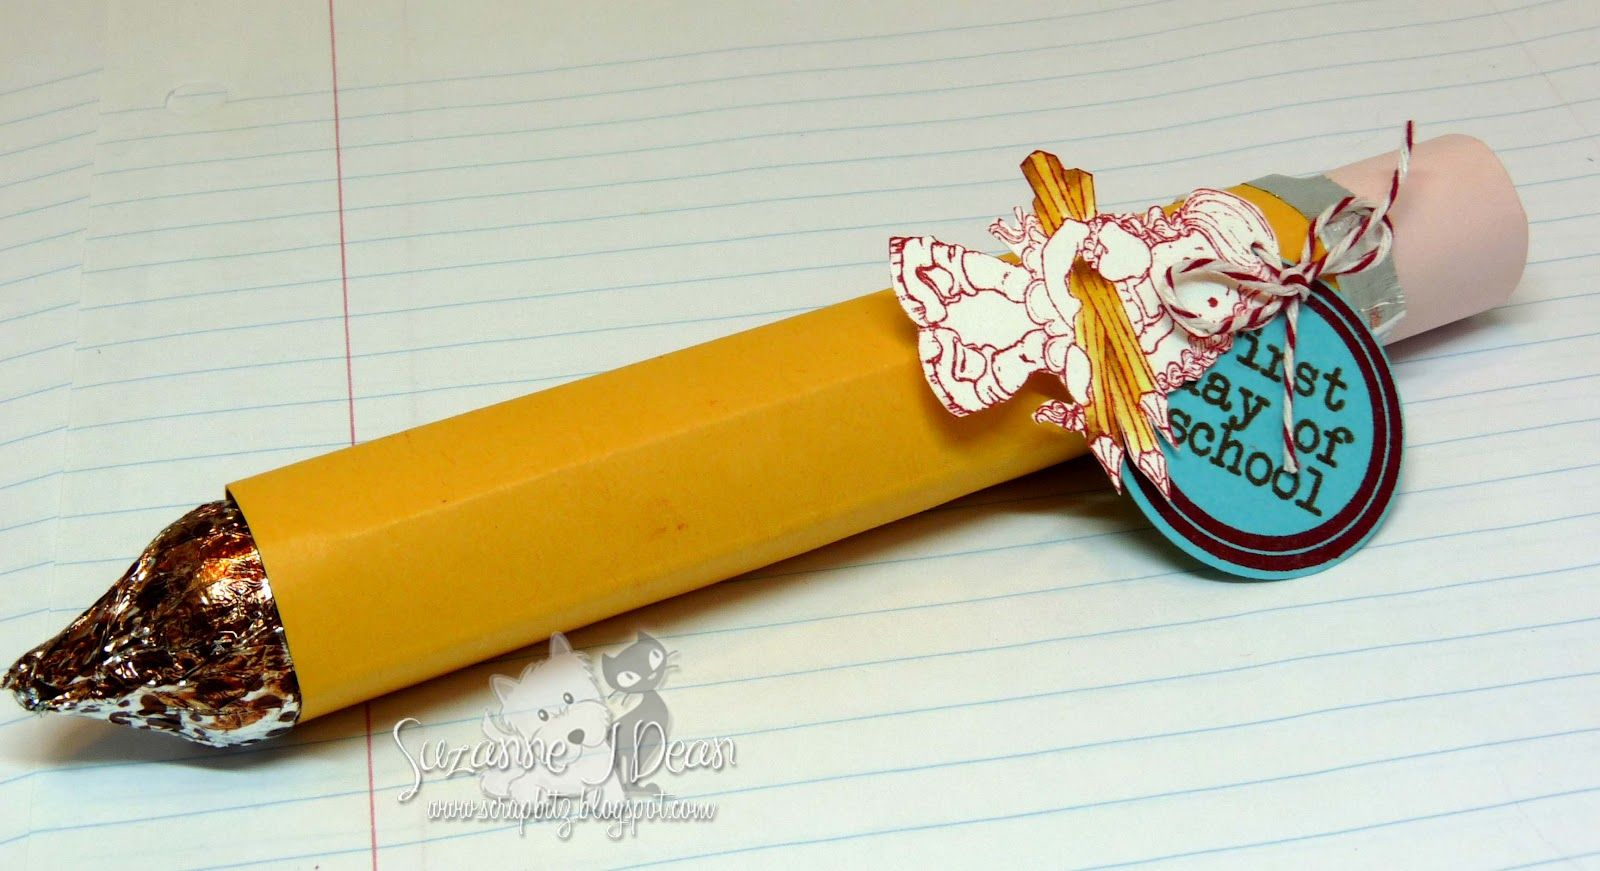 candy pencil made with roll of Mementos, Hershey Kiss and